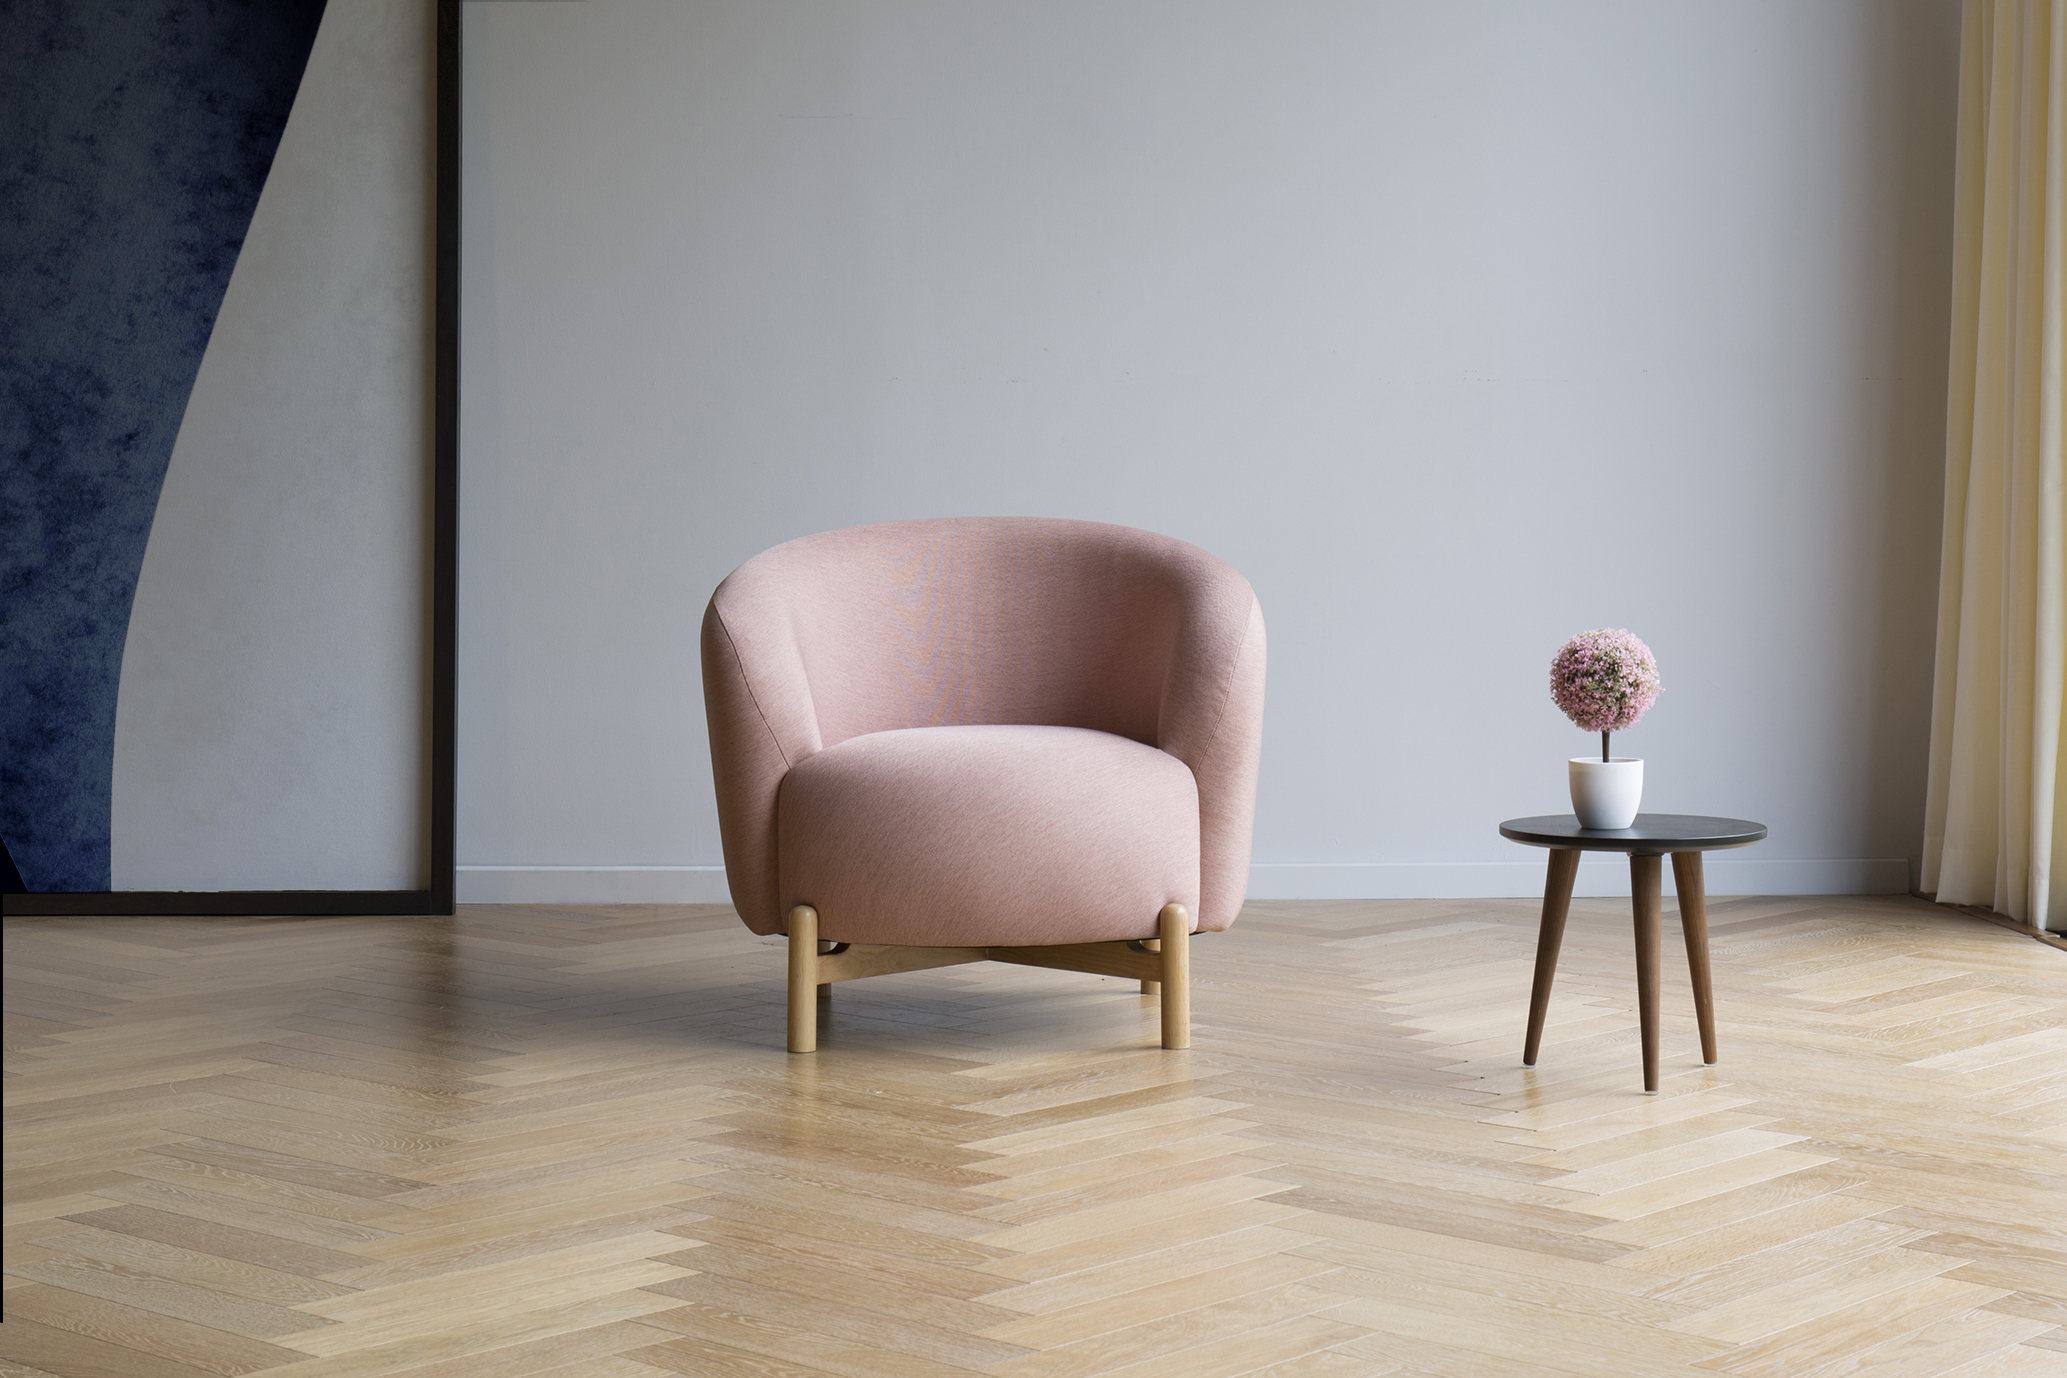 Esby-chair-oliver-lukas-weisskrogh-2.jpg